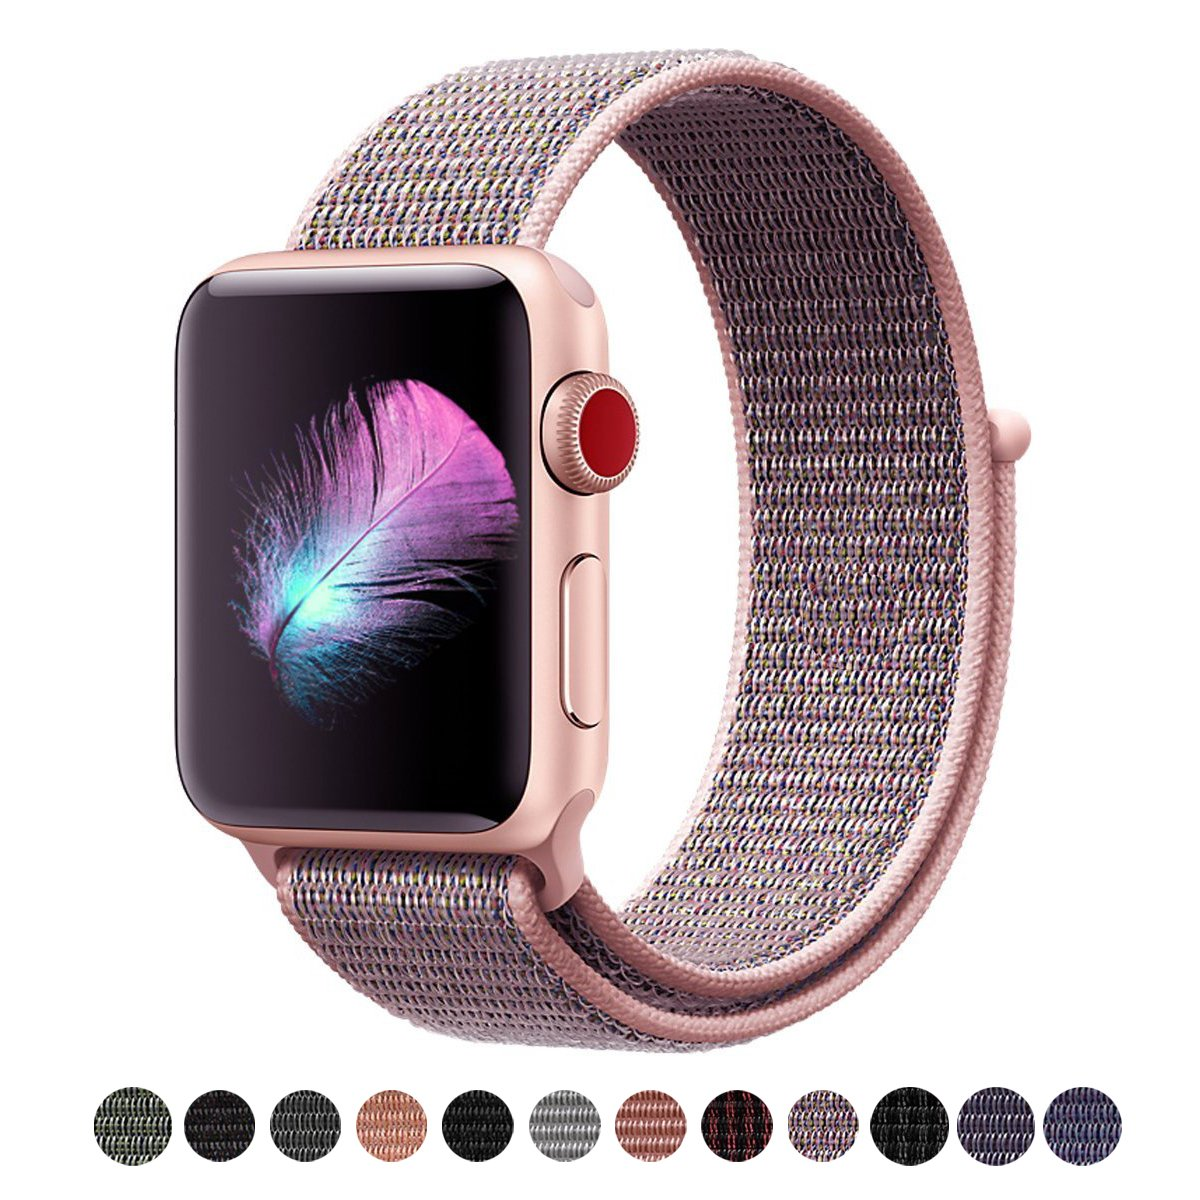 For Apple Watch Band,Yunsea New Nylon Sport Loop with Hook and Loop Fastener Adjustable Closure Wrist Strap Replacment Band for iwatch,38mm,Pink Sand